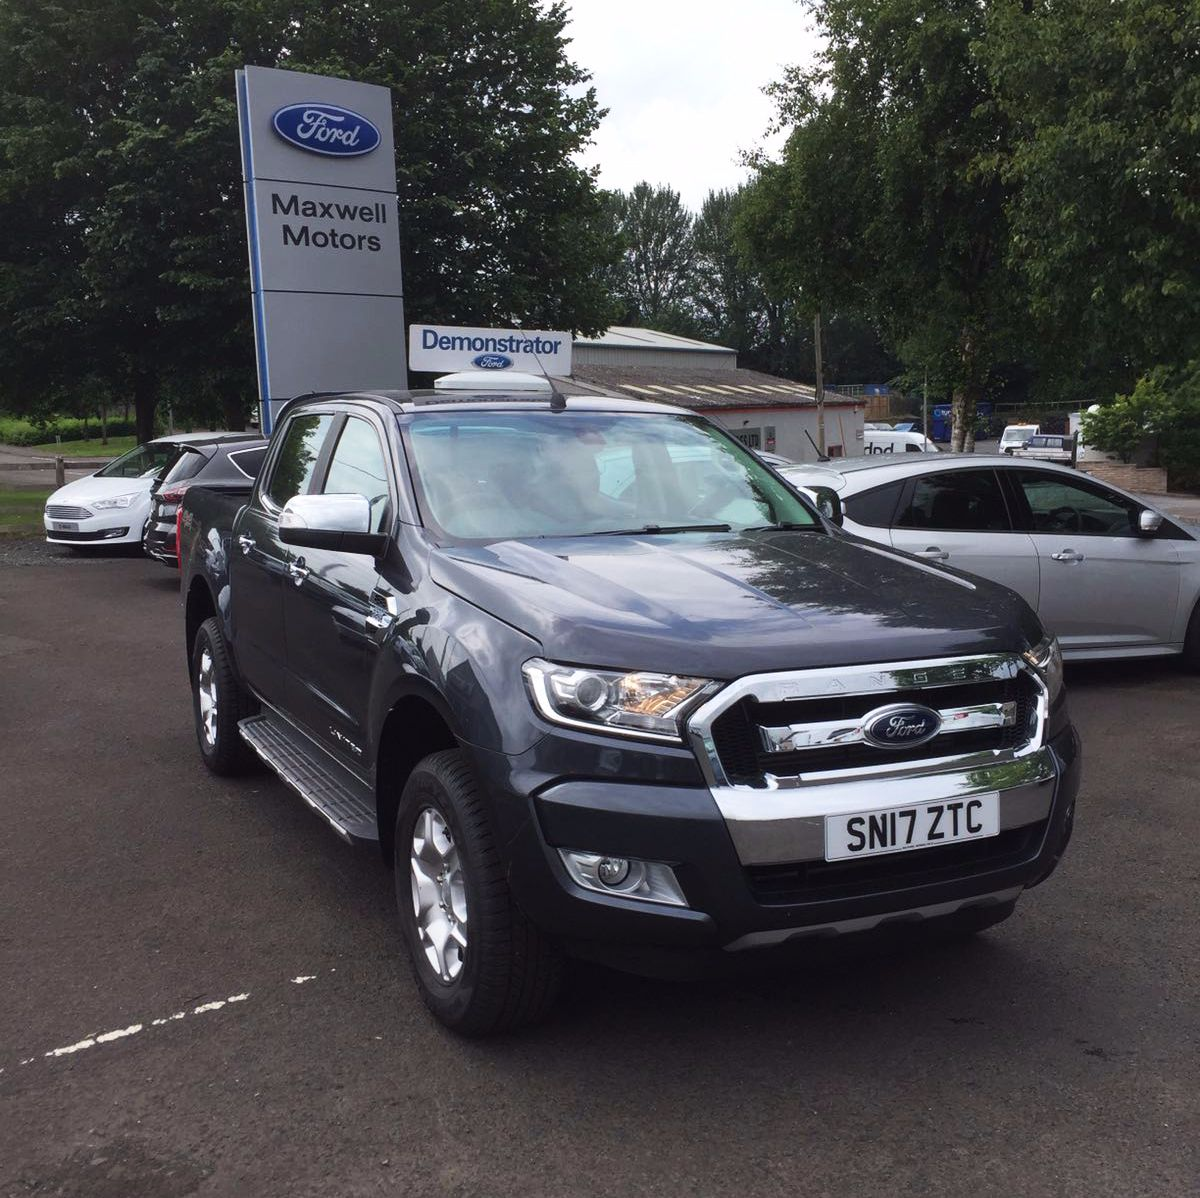 Ford RANGER 2.2 Limited 150PS Double Cab Pickup Auto